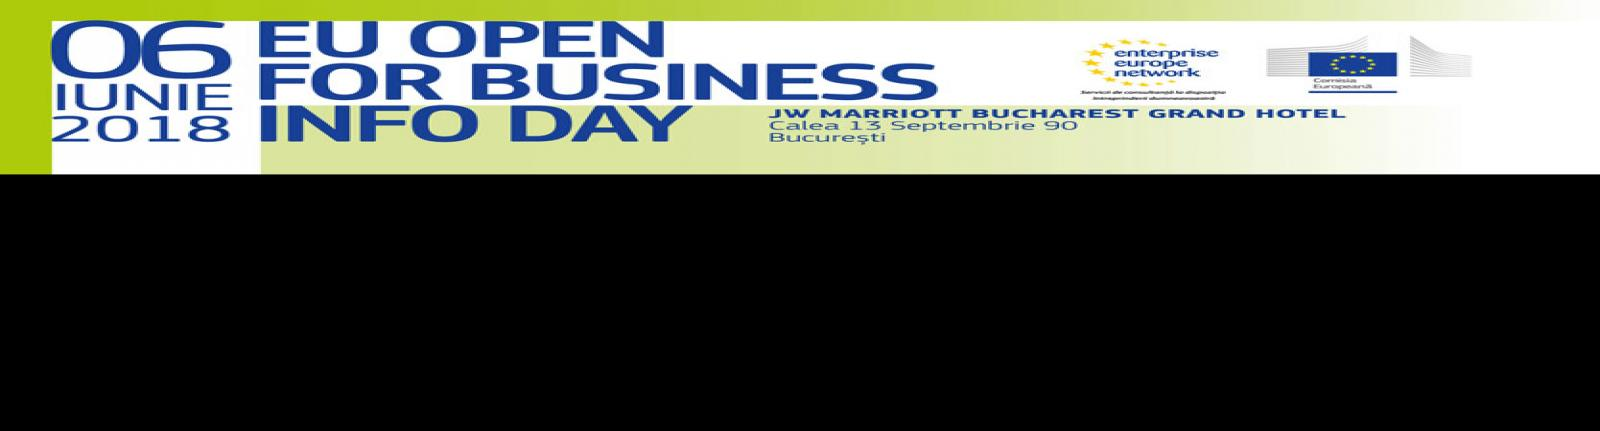 BannerBusinessInfoDay_2018_928x250px_with_address_Bucuresti.jpg